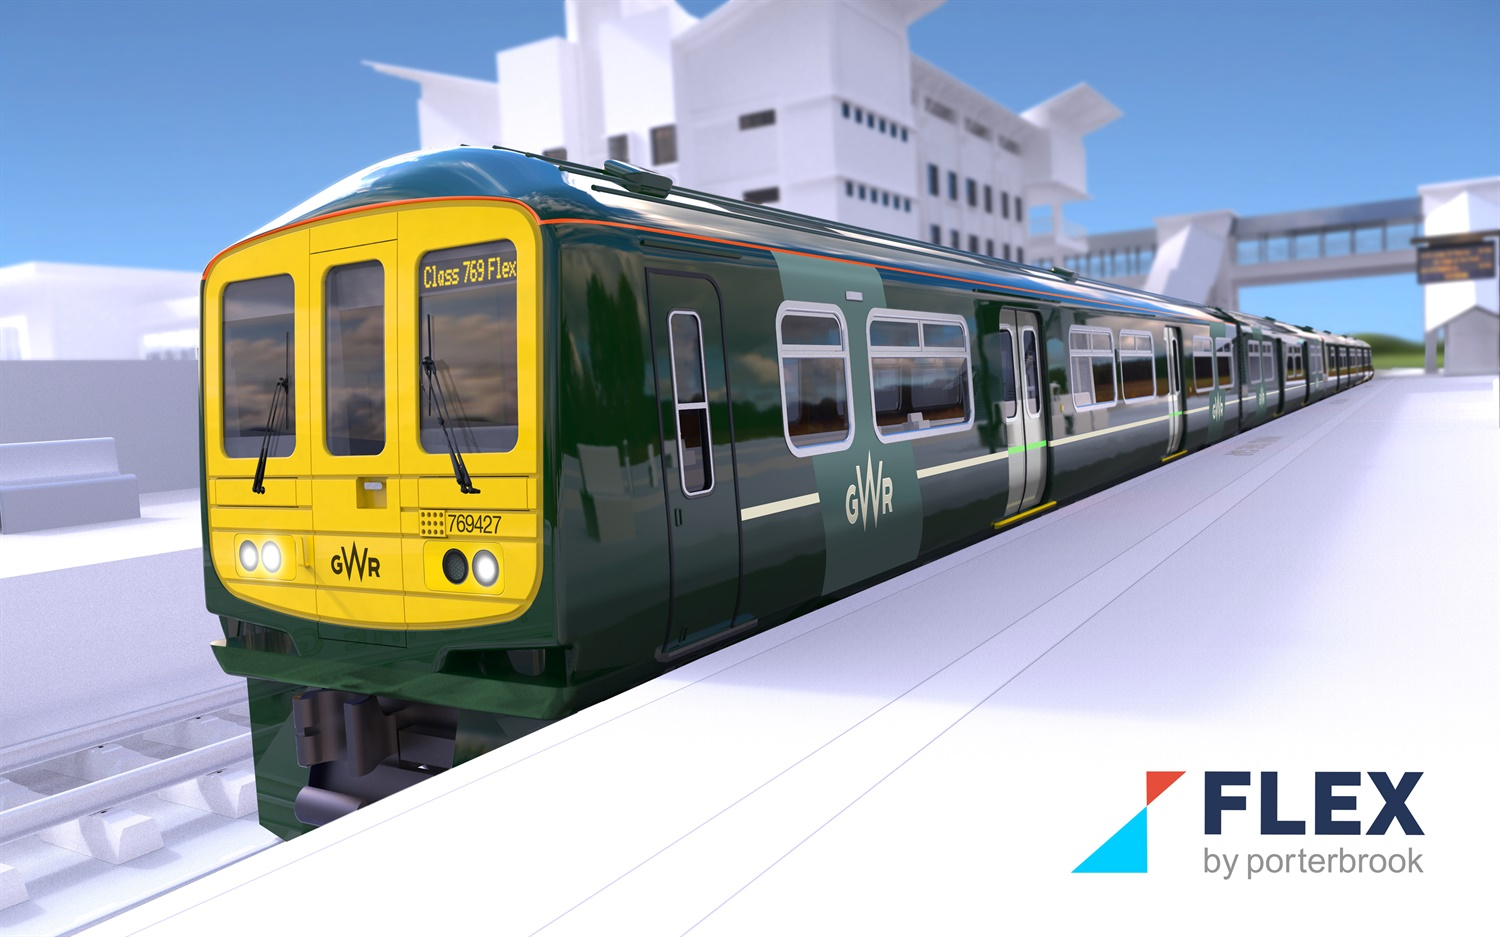 GWR to roll out 19 'tri-mode' trains by 2019 under new deal